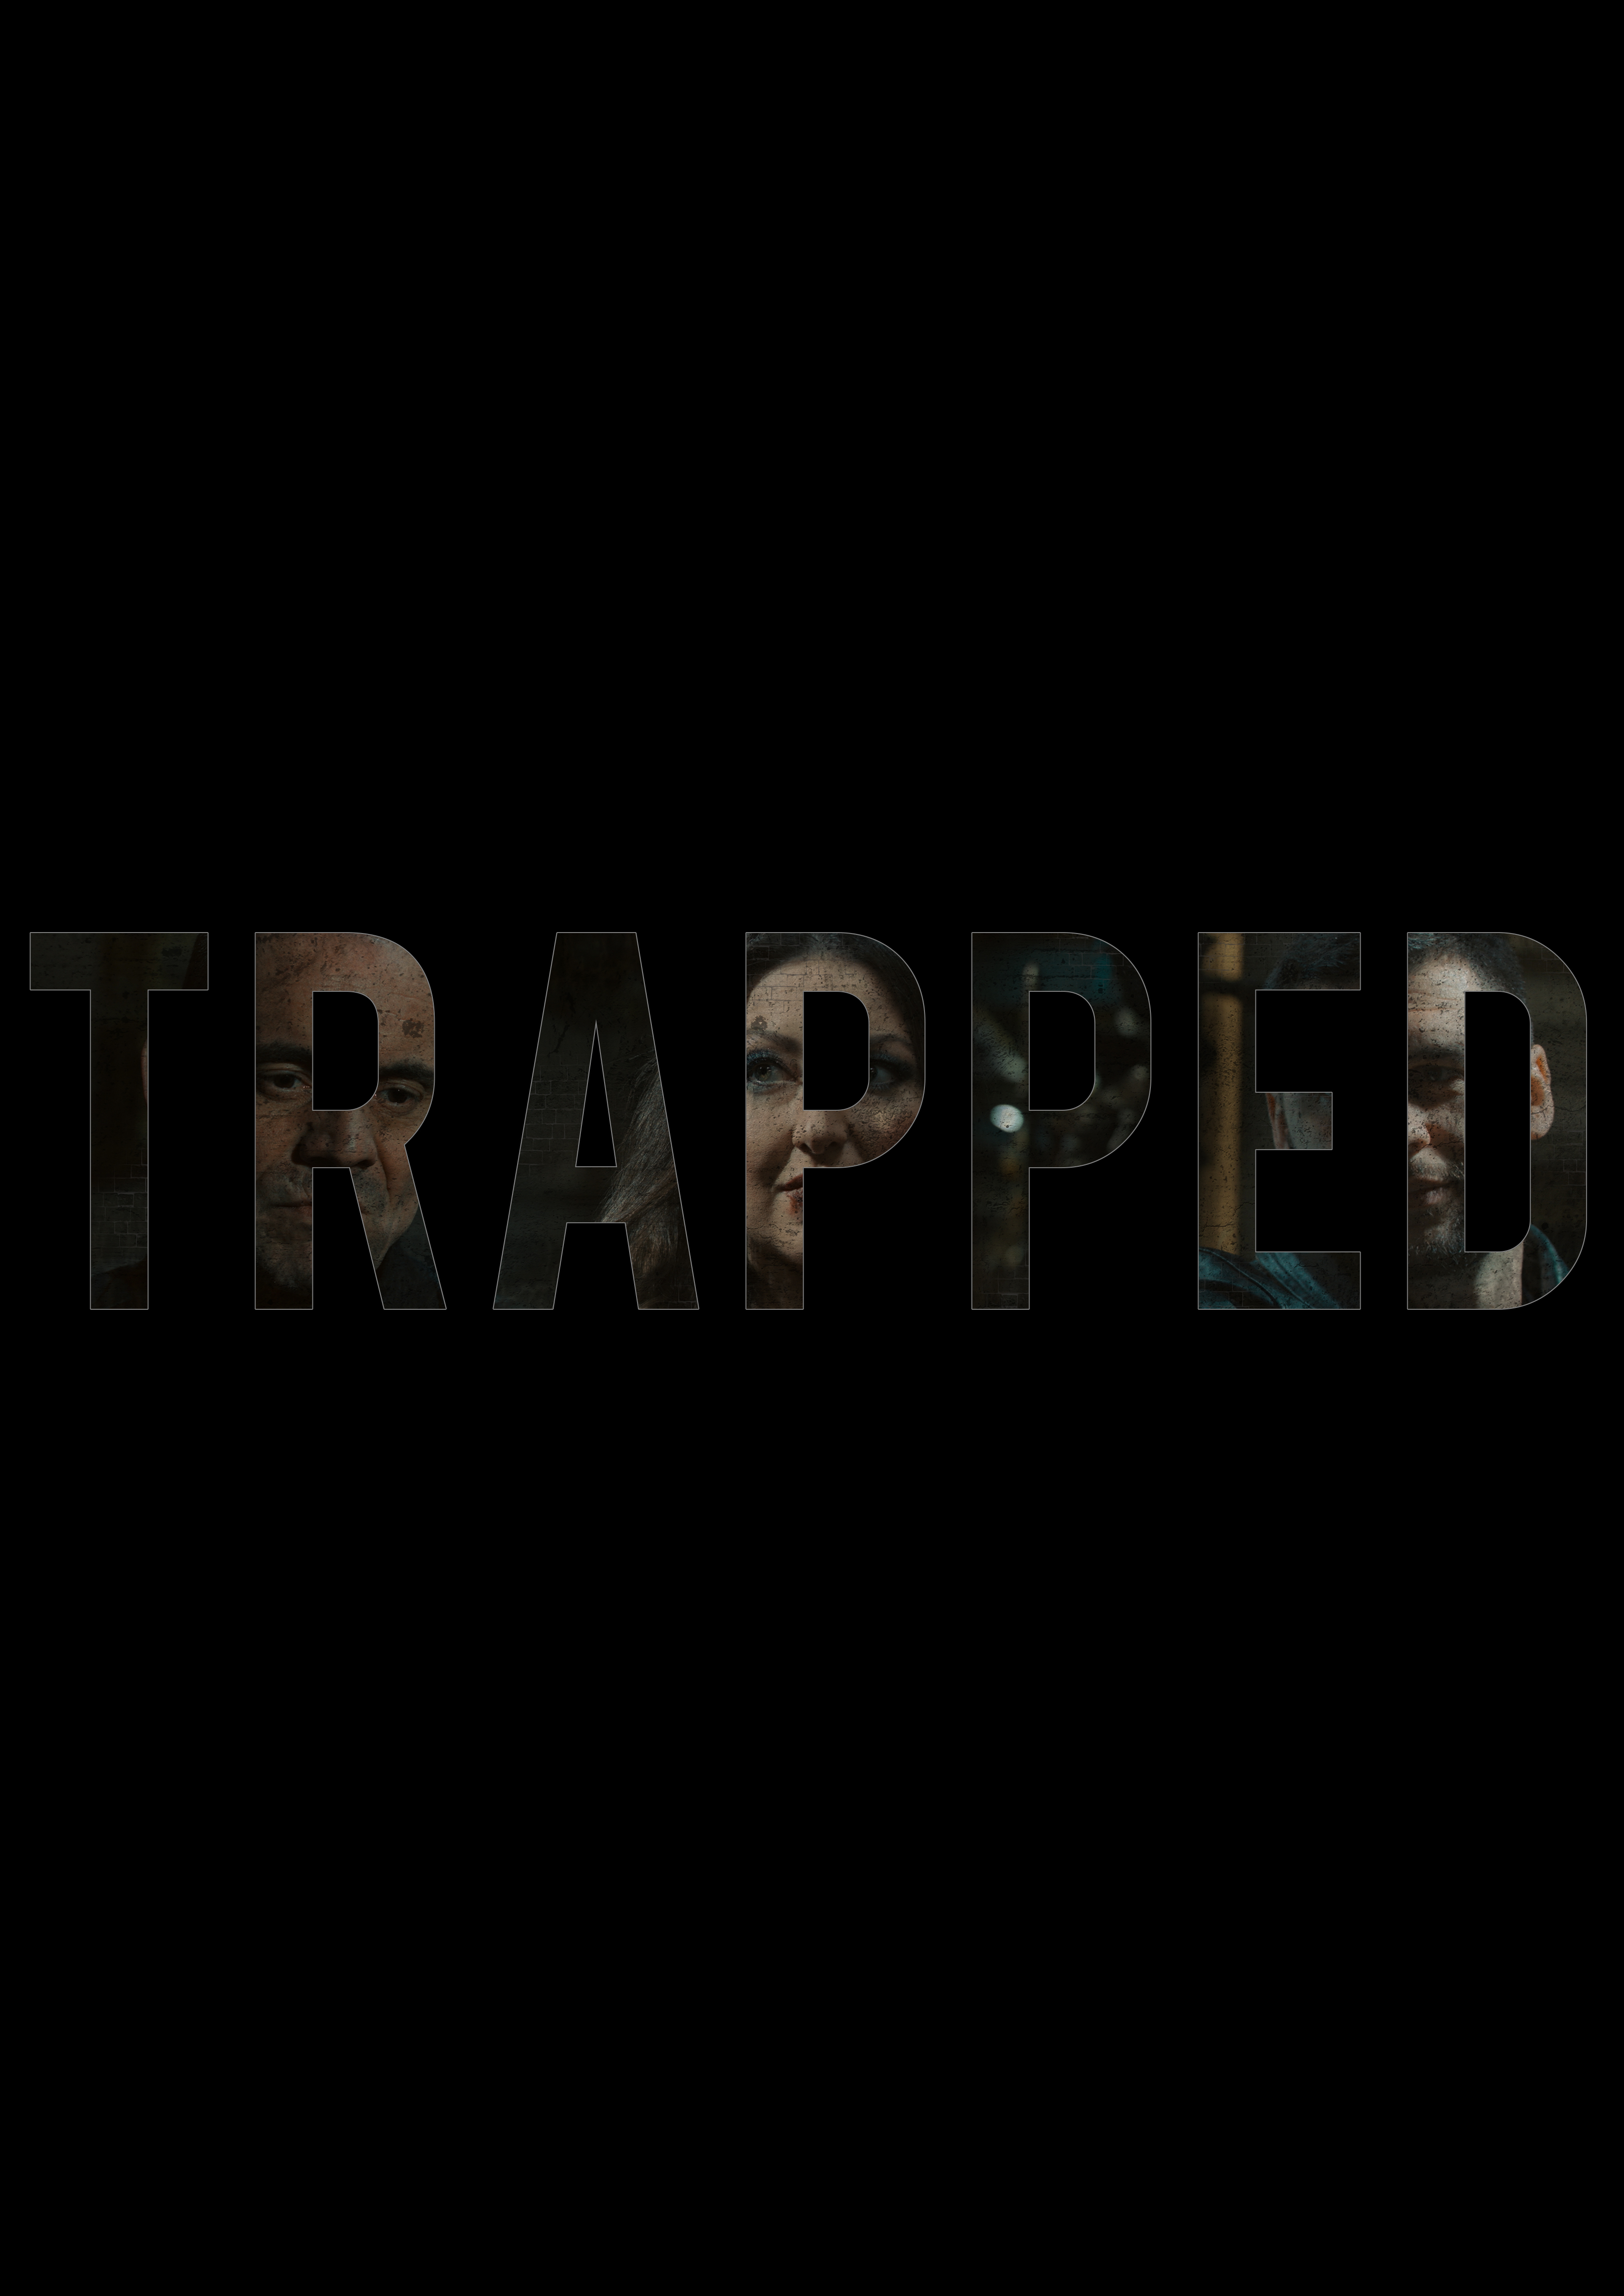 Trapped title poster